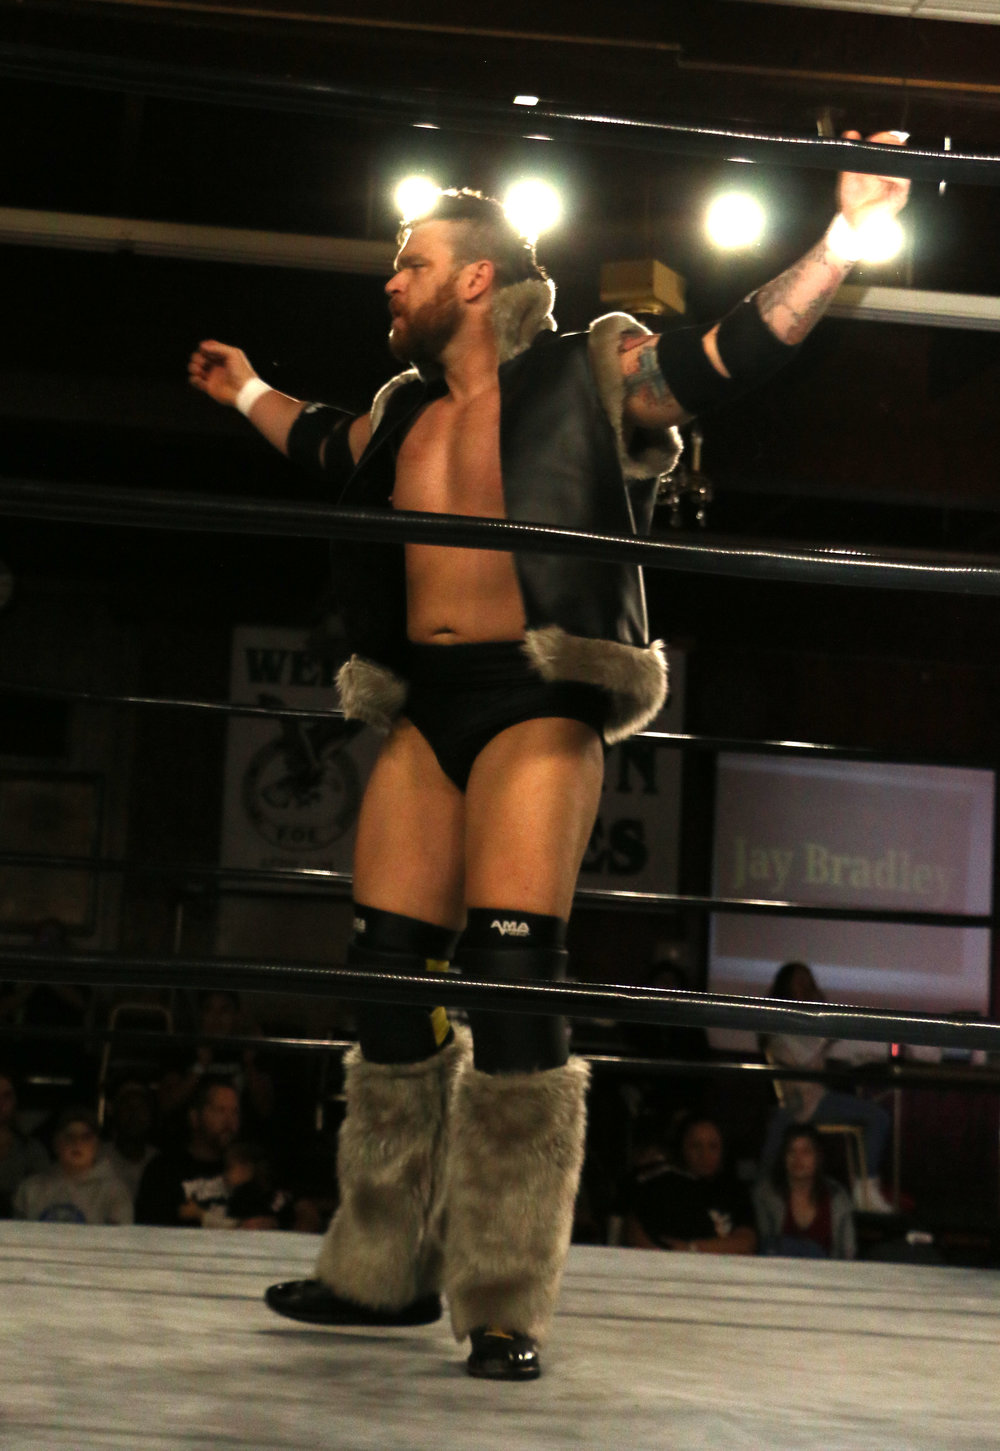 Jay Bradley in the ring before his match against Steve Michaels.